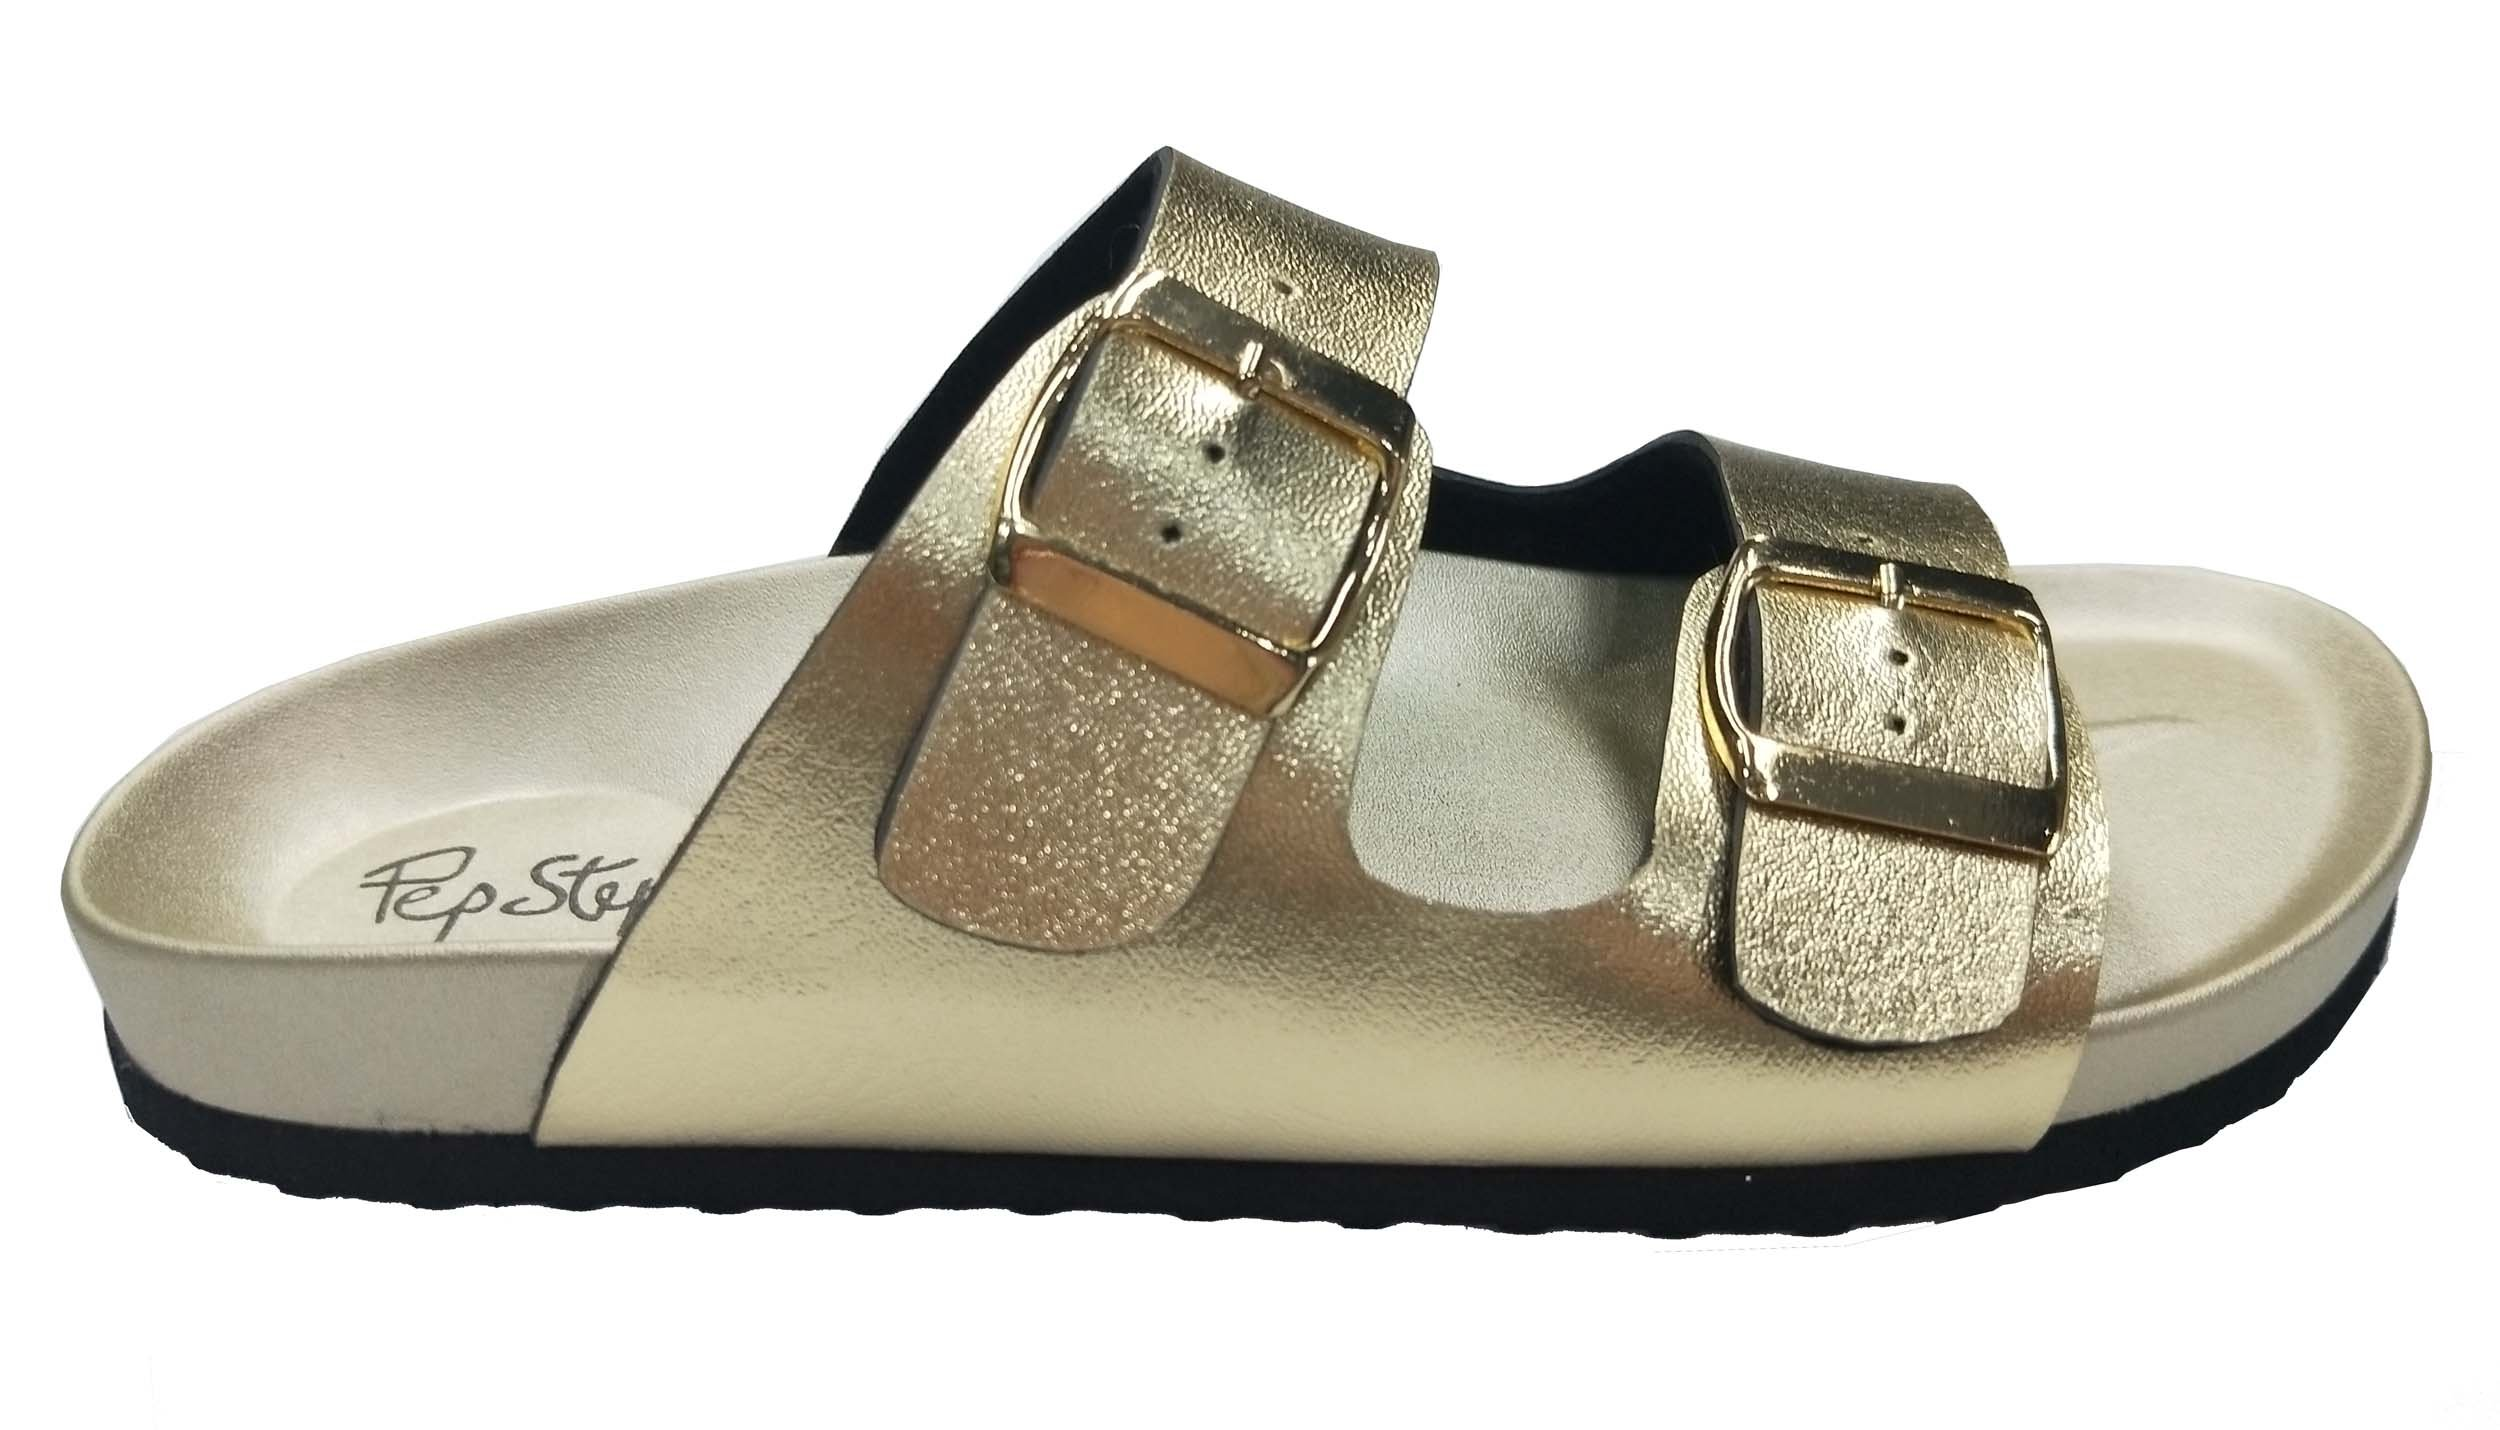 Pepstep Buckle Strap Sandals for Women Super Lightweight and Comfortable Golden/Black Womens Footbed Slide Sandals(9, Golden) by Pepstep (Image #5)